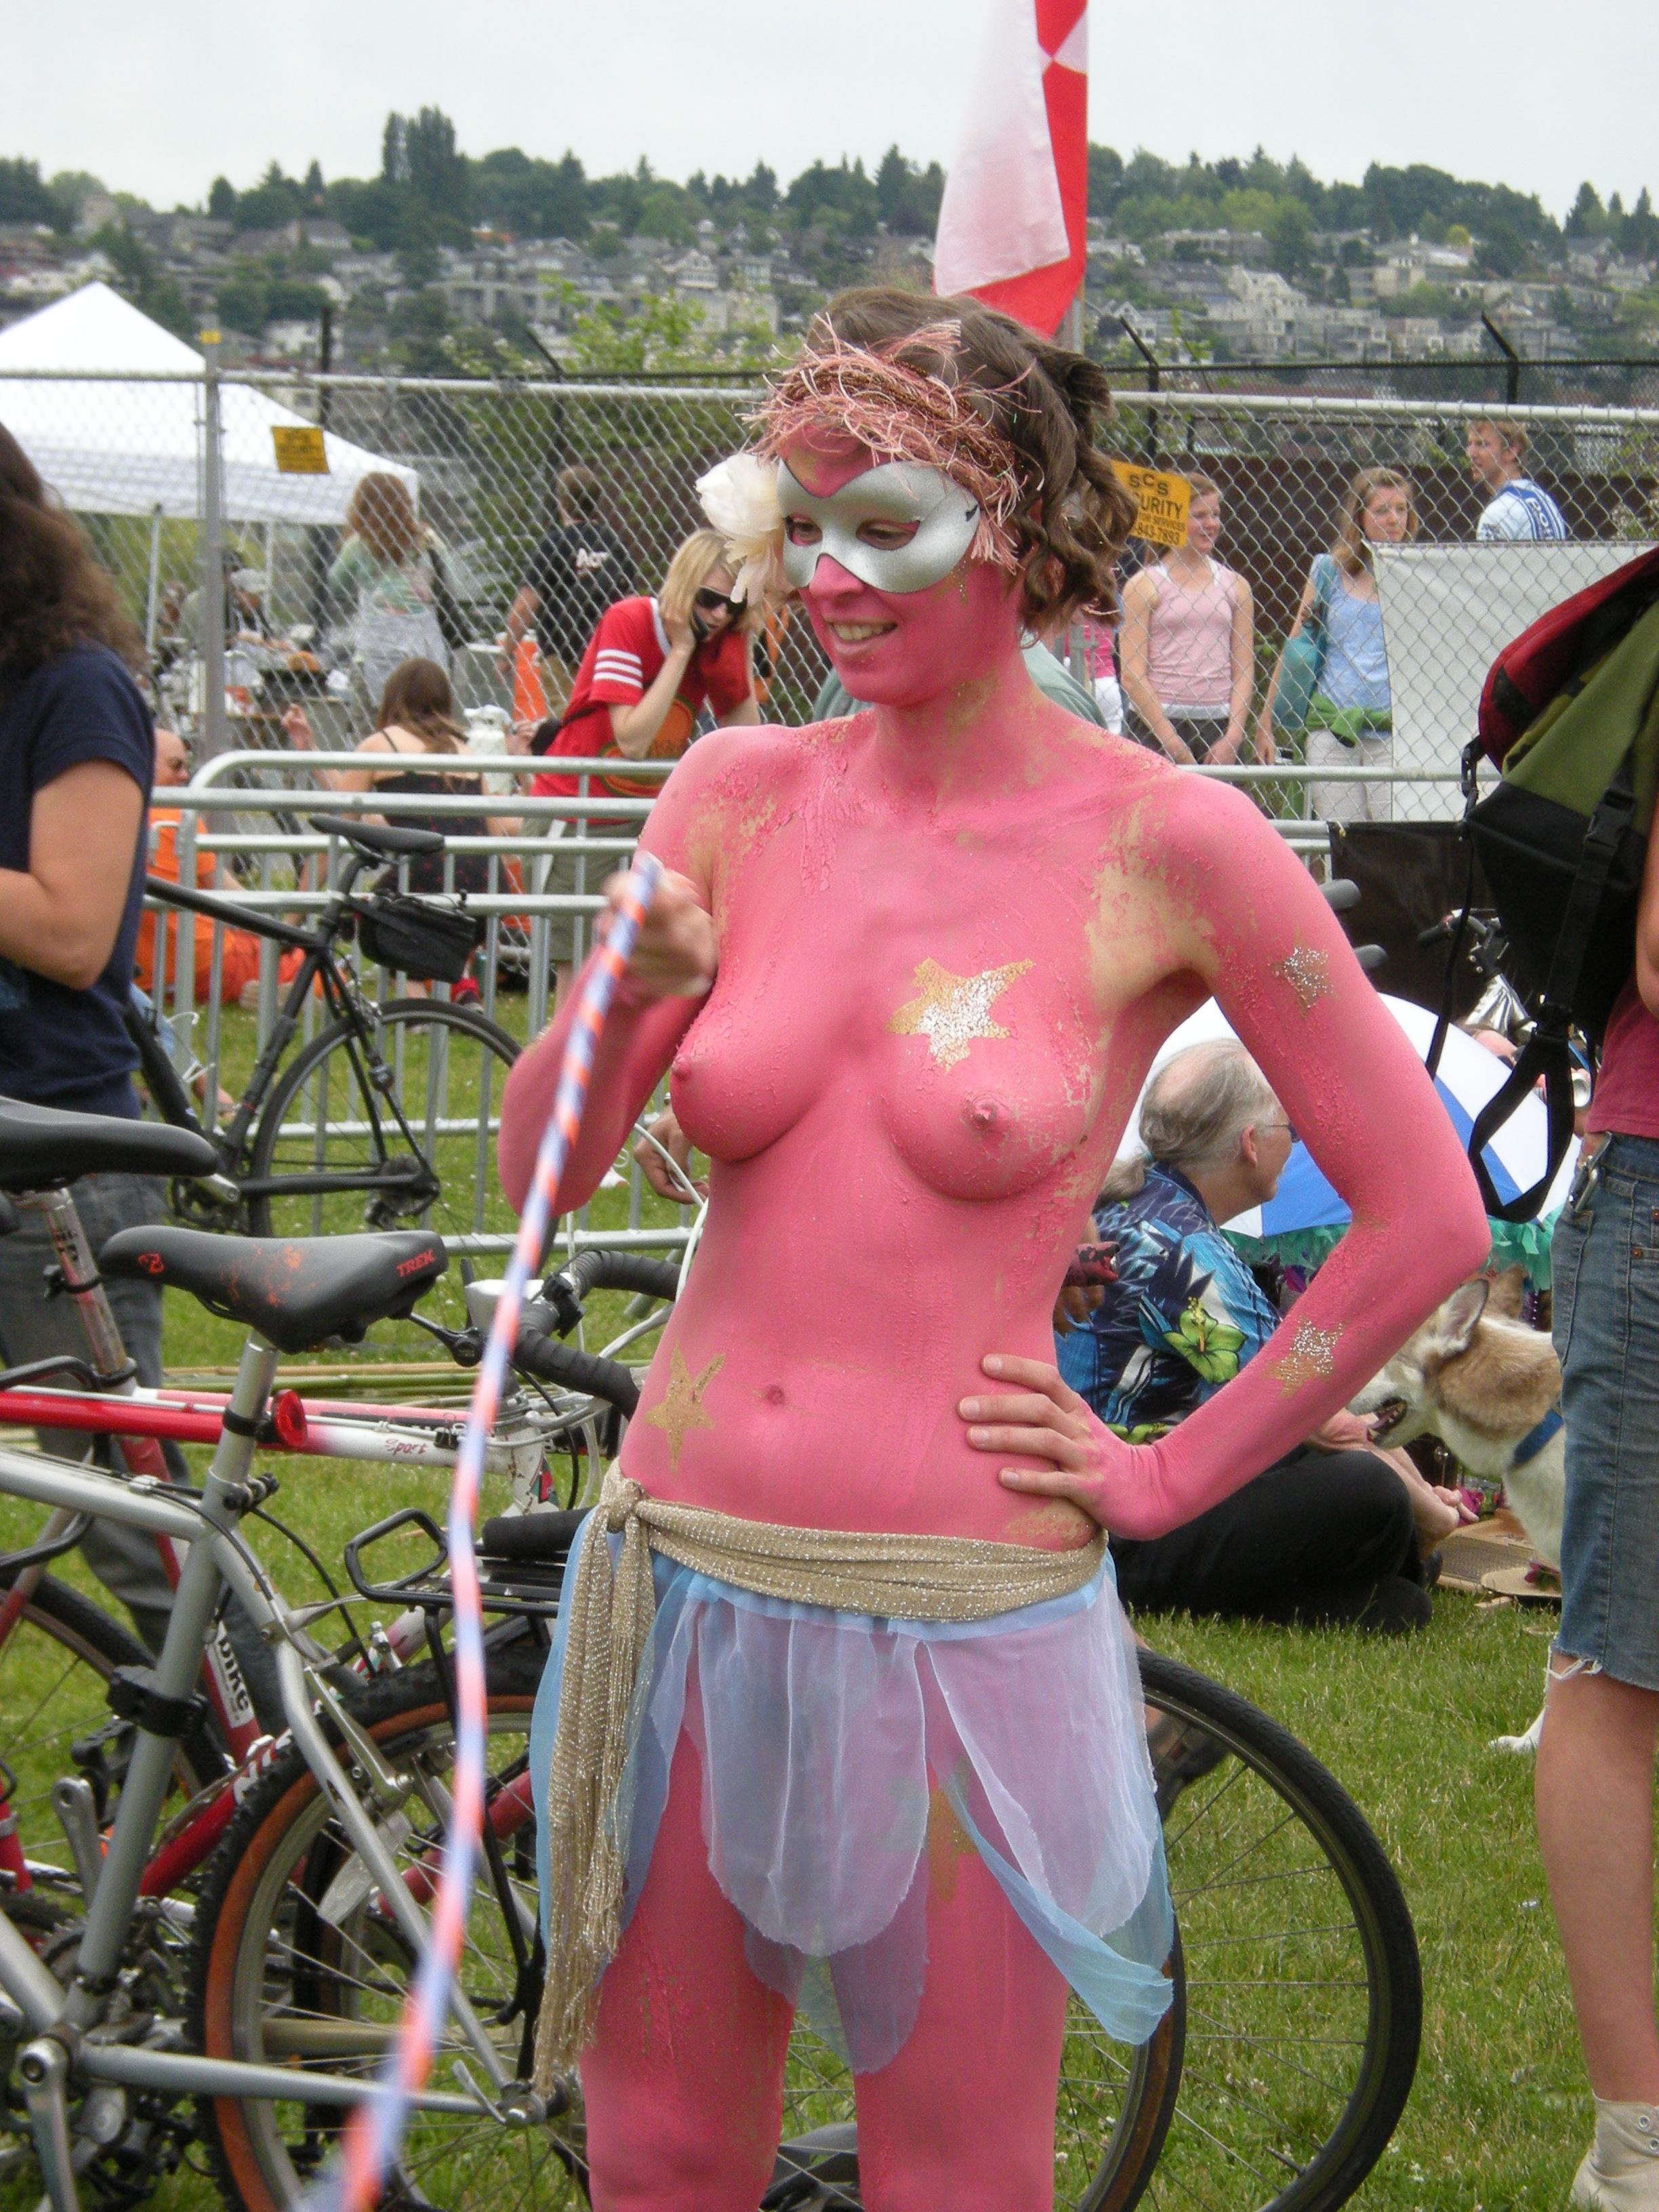 Cfnm fremont solstice paint party